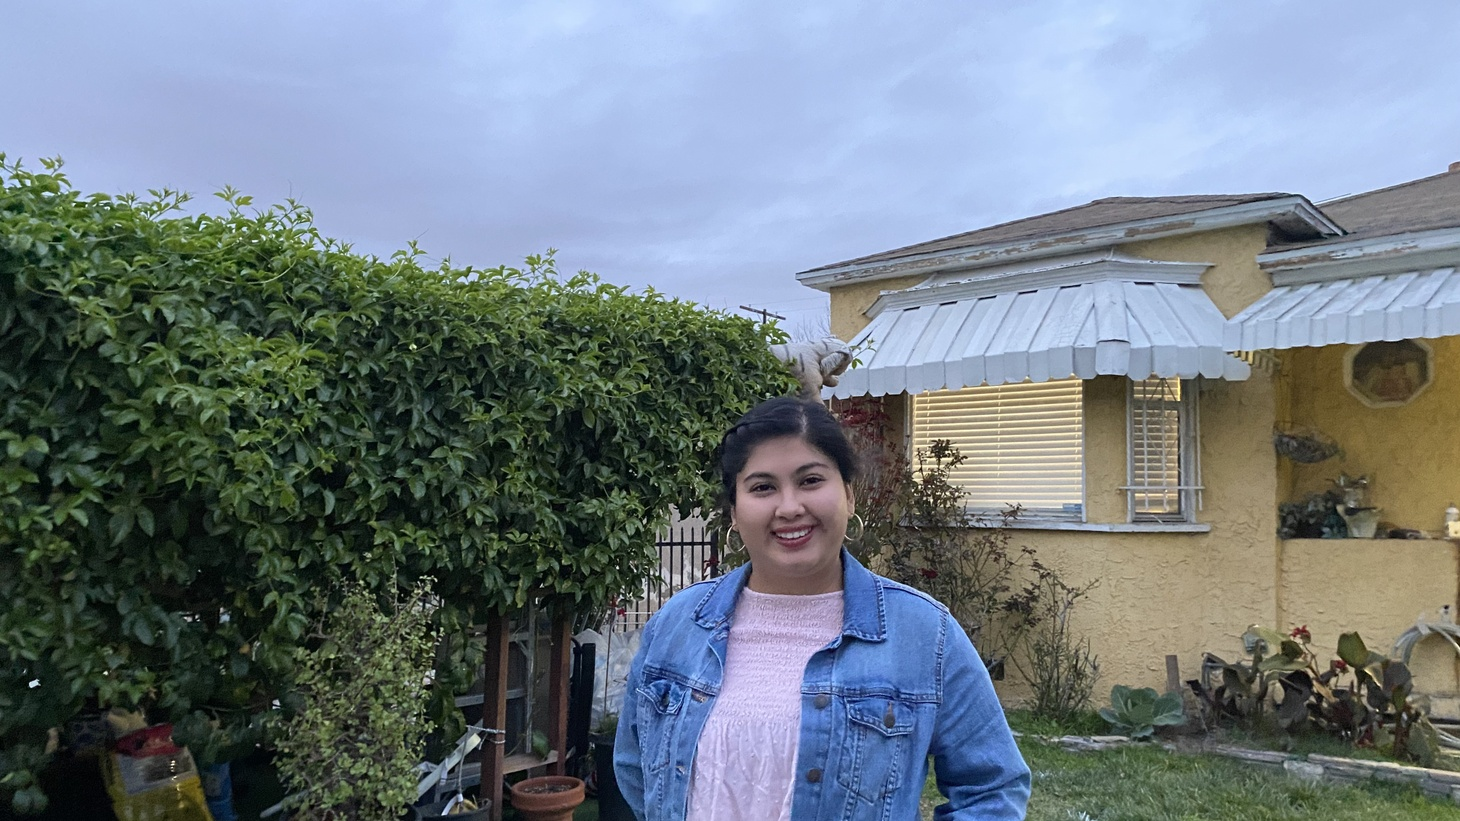 Andrea Galdamez, 21, in front of the home she shares in South LA with three generations of her family. COVID-19 recently sickened the entire family.